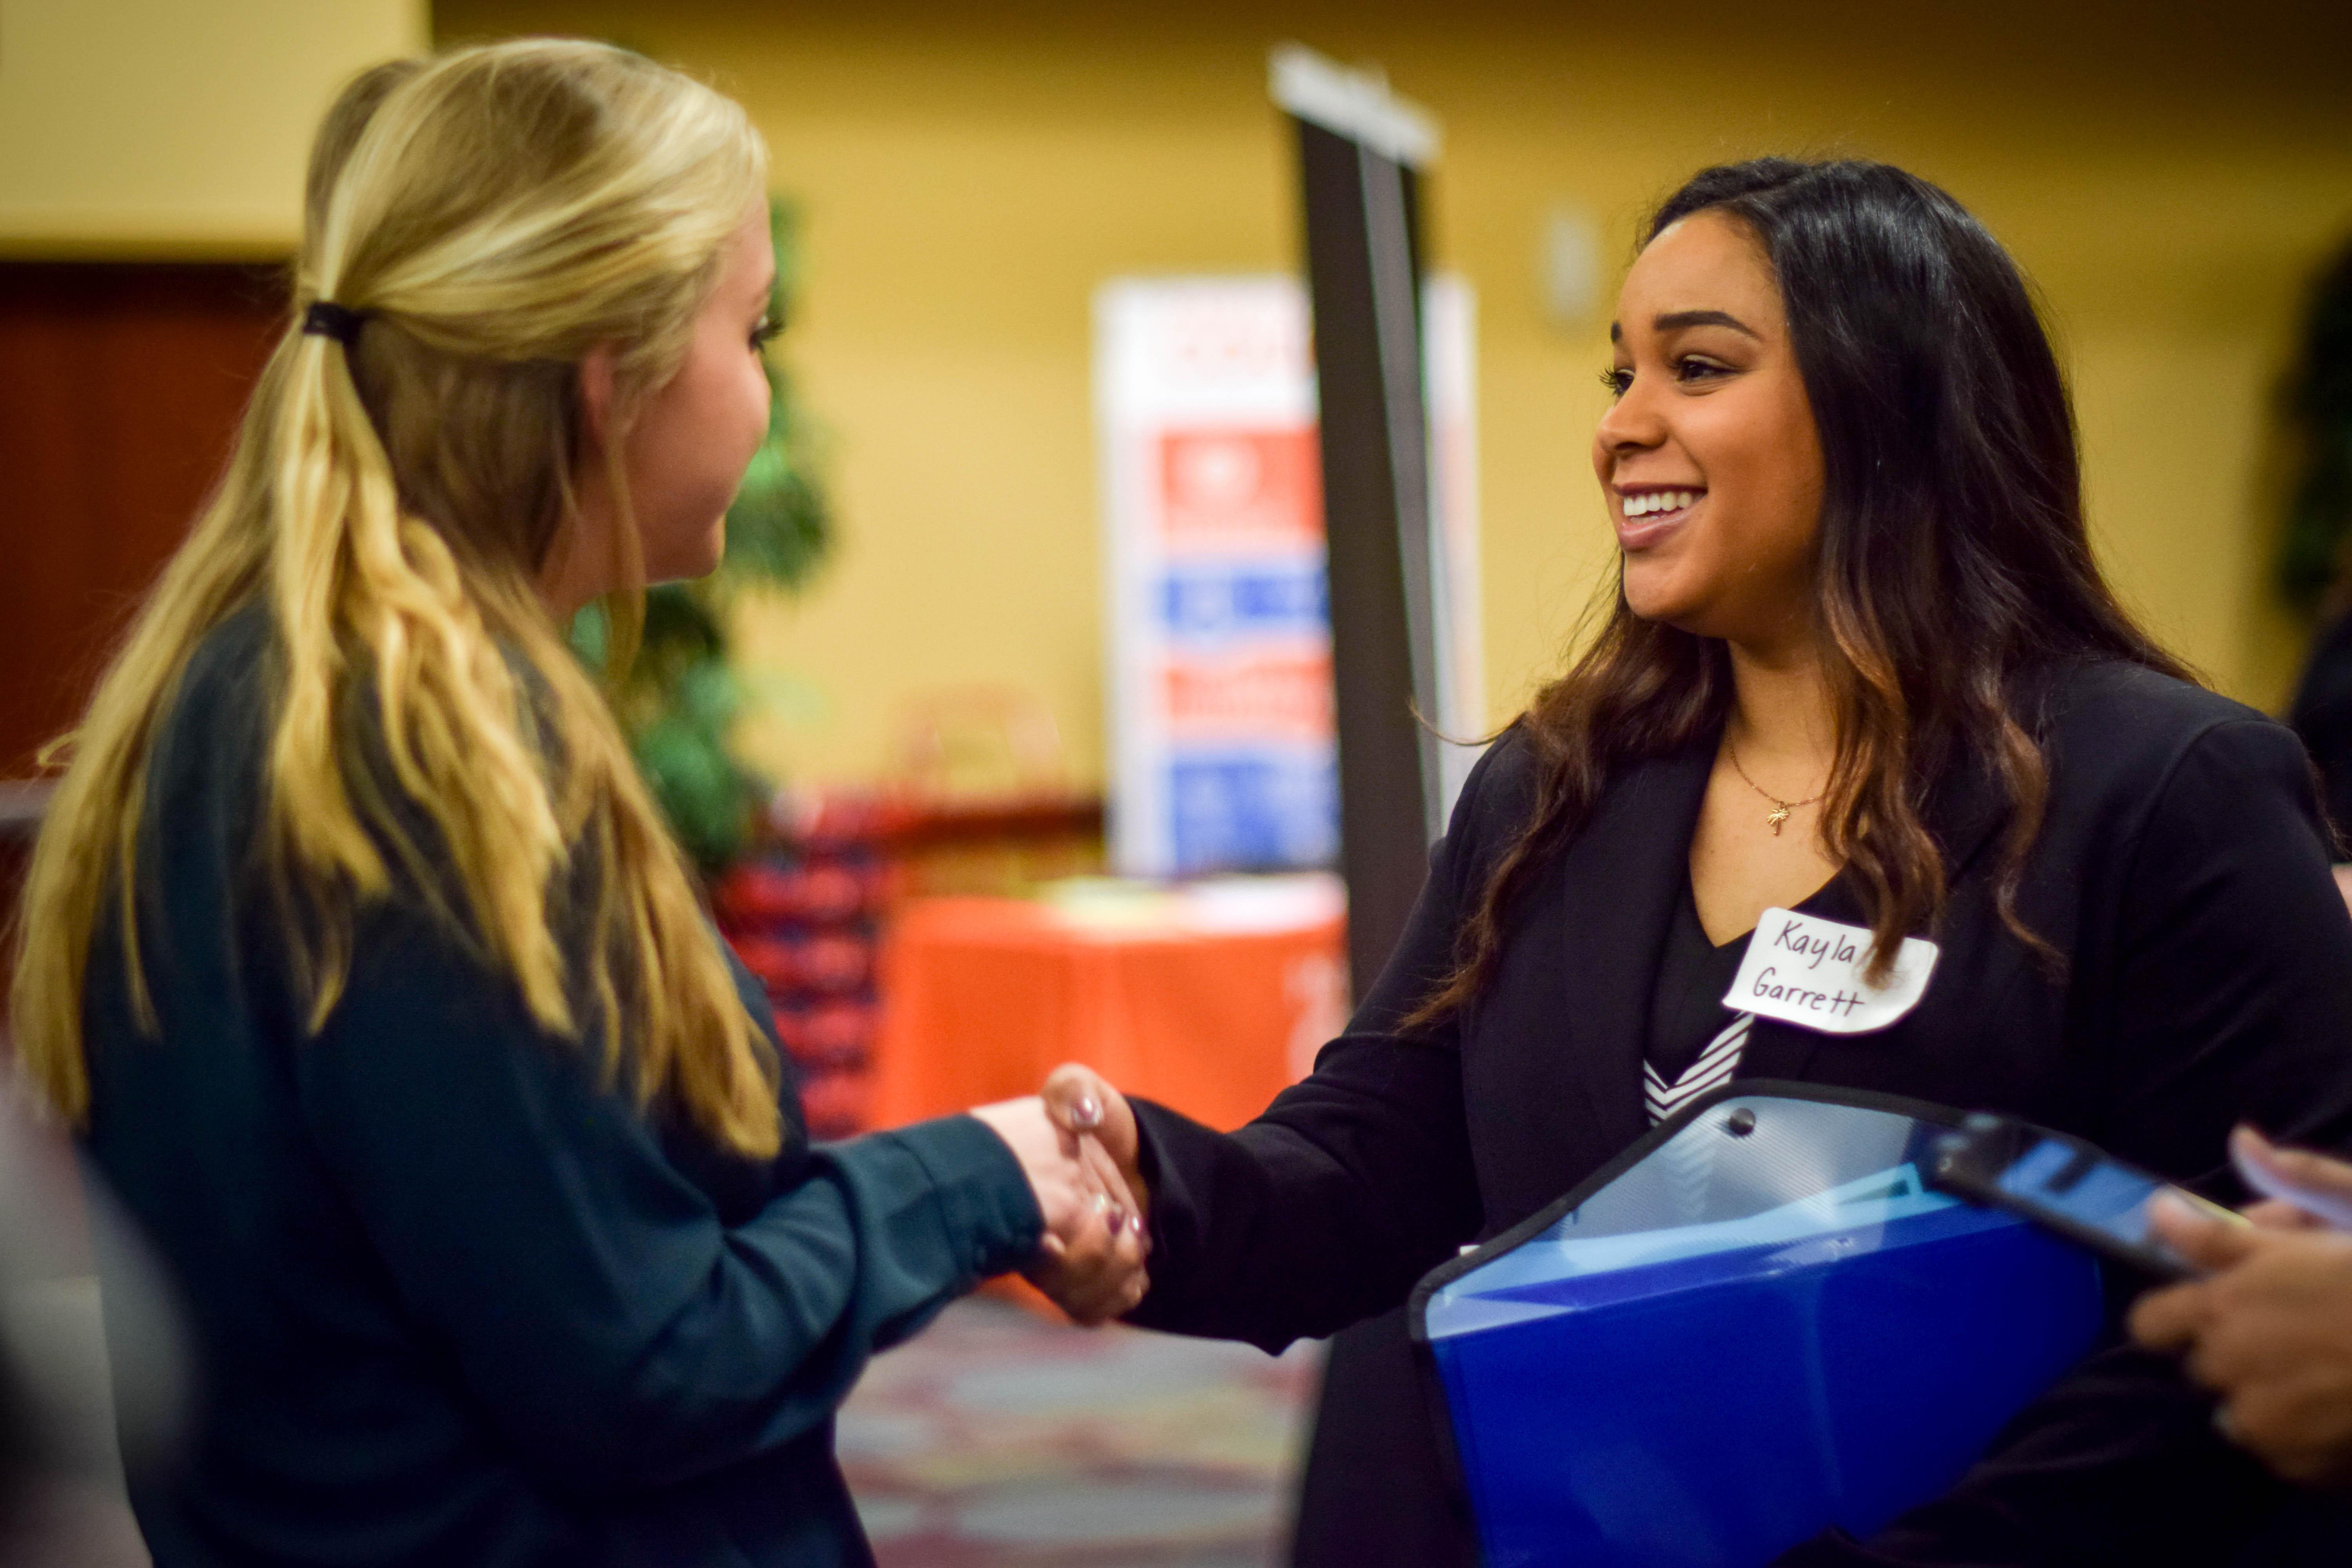 Student shaking hands with an employer at the Career Fair